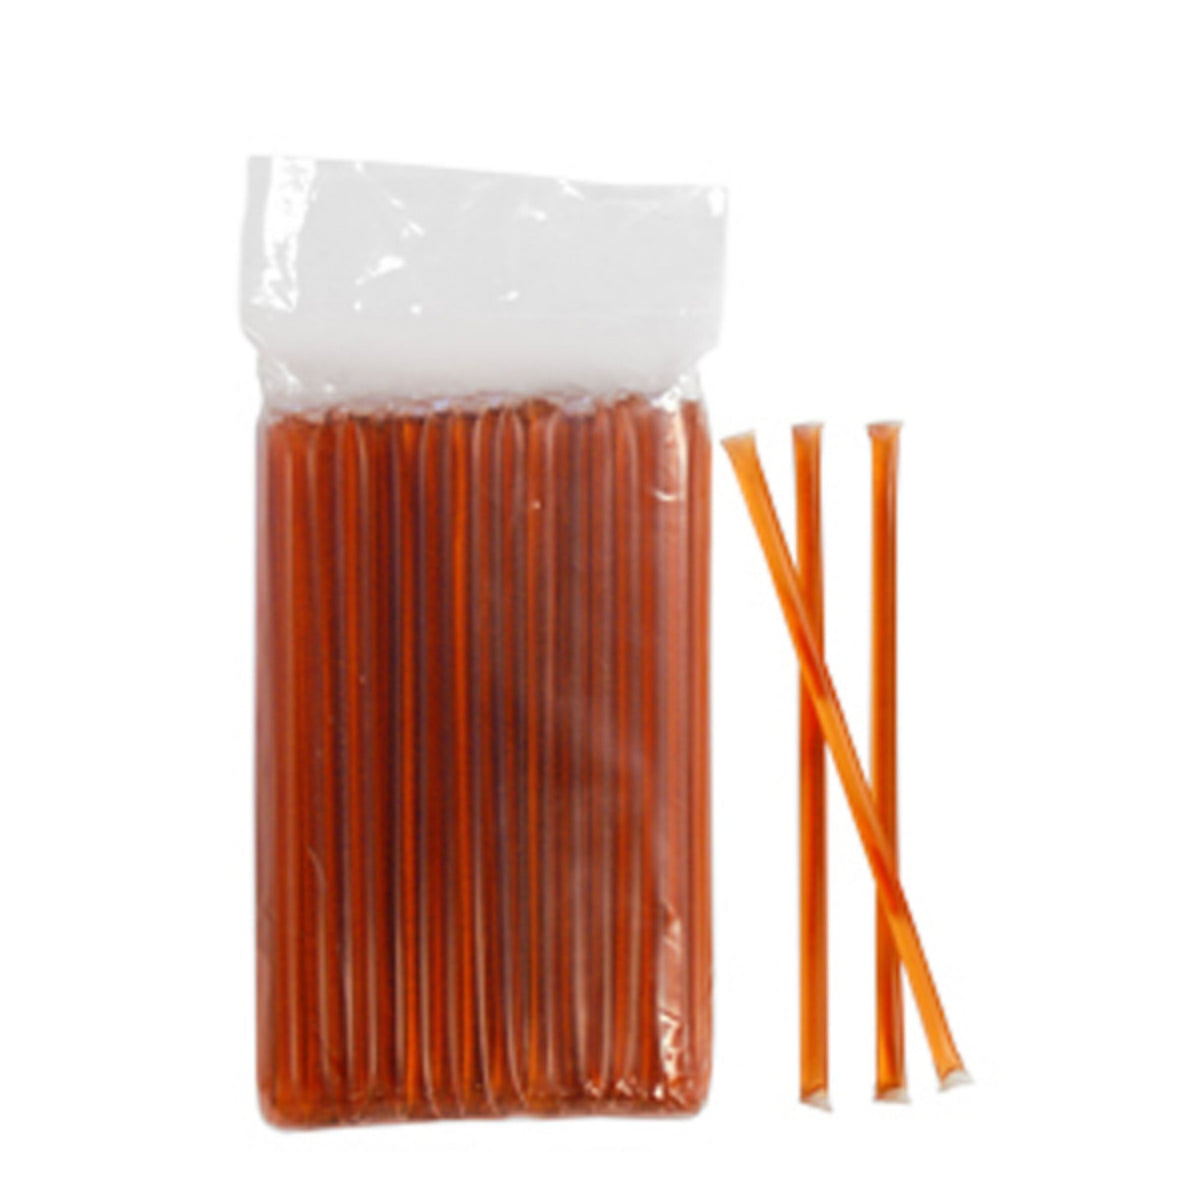 Anna's Sweet Watermelon Flavored Honey Sticks in a Large Bulk Pack of 100